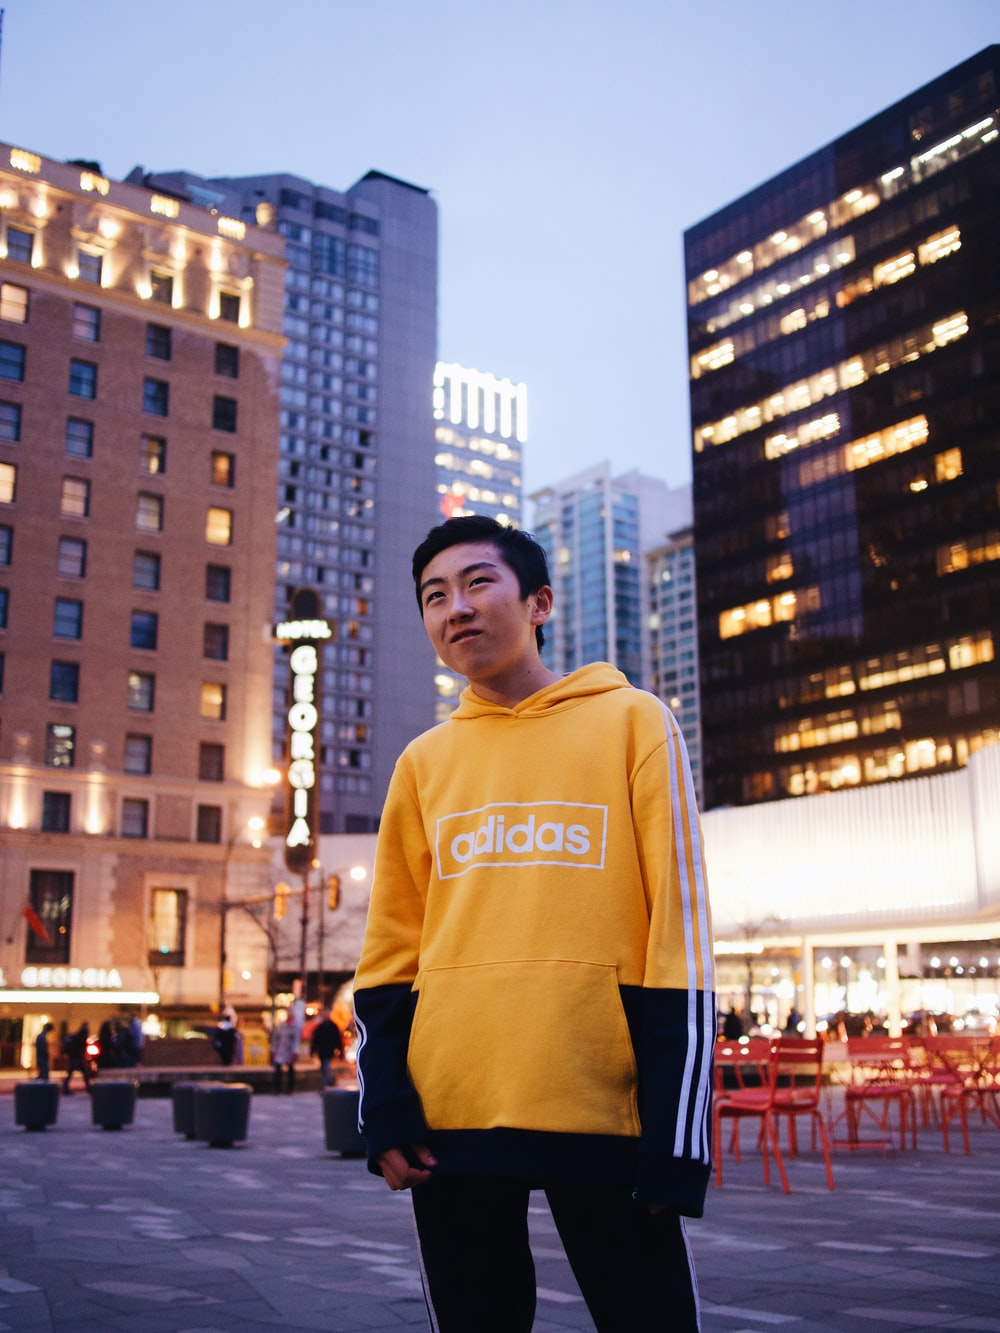 man in yellow hoodie standing on the street during daytime